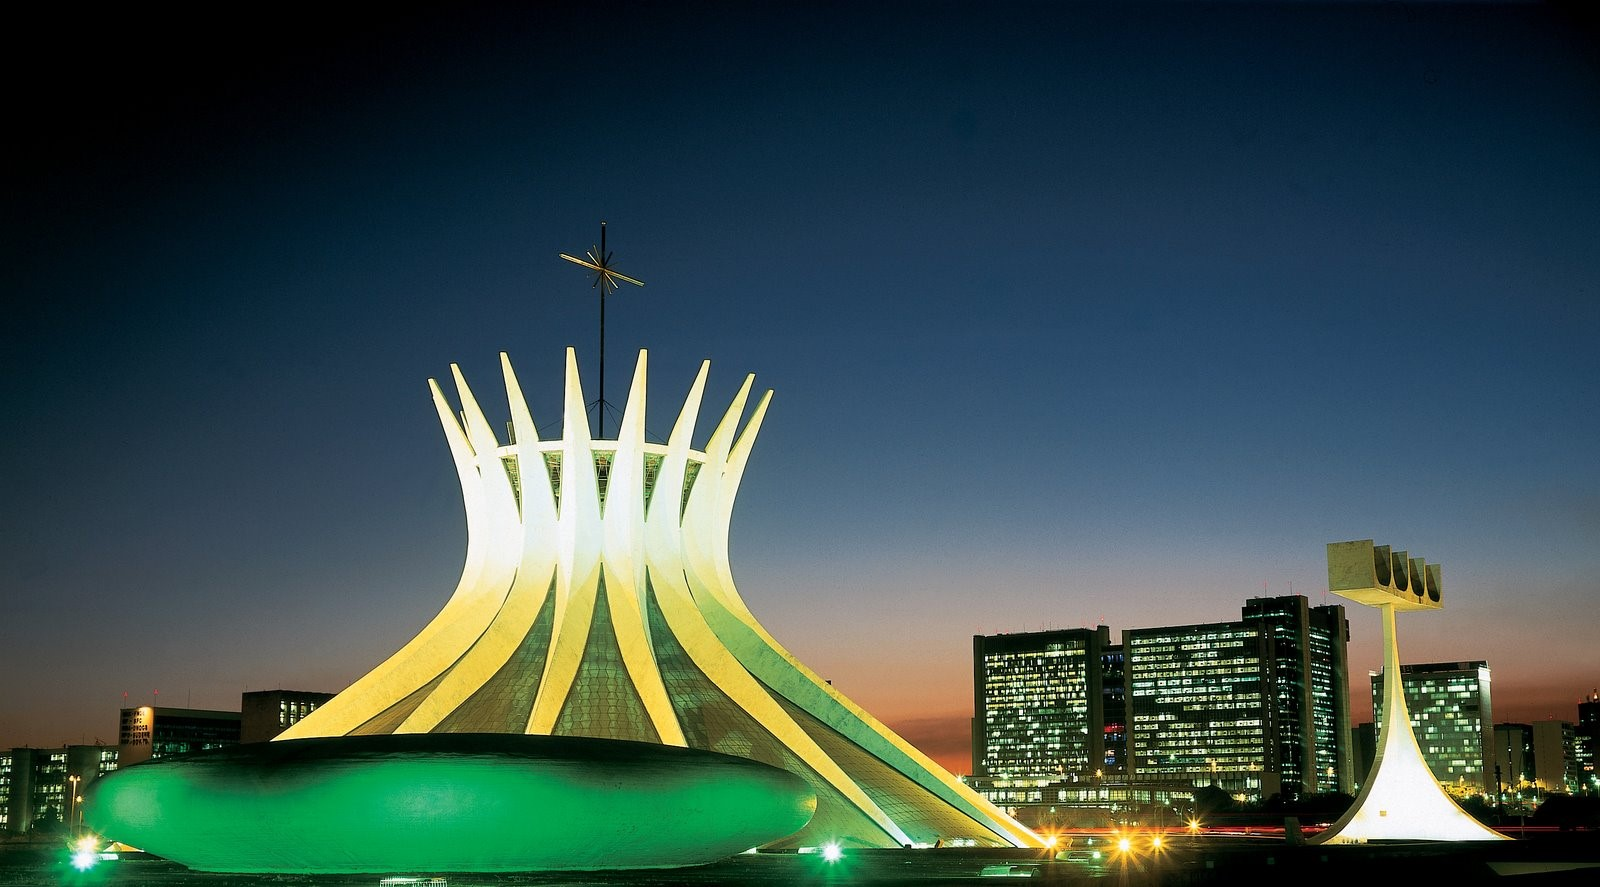 Cathedral of Brasília by Oscar Niemeyer-Hyperbolic structure built from Concrete - Sheet2